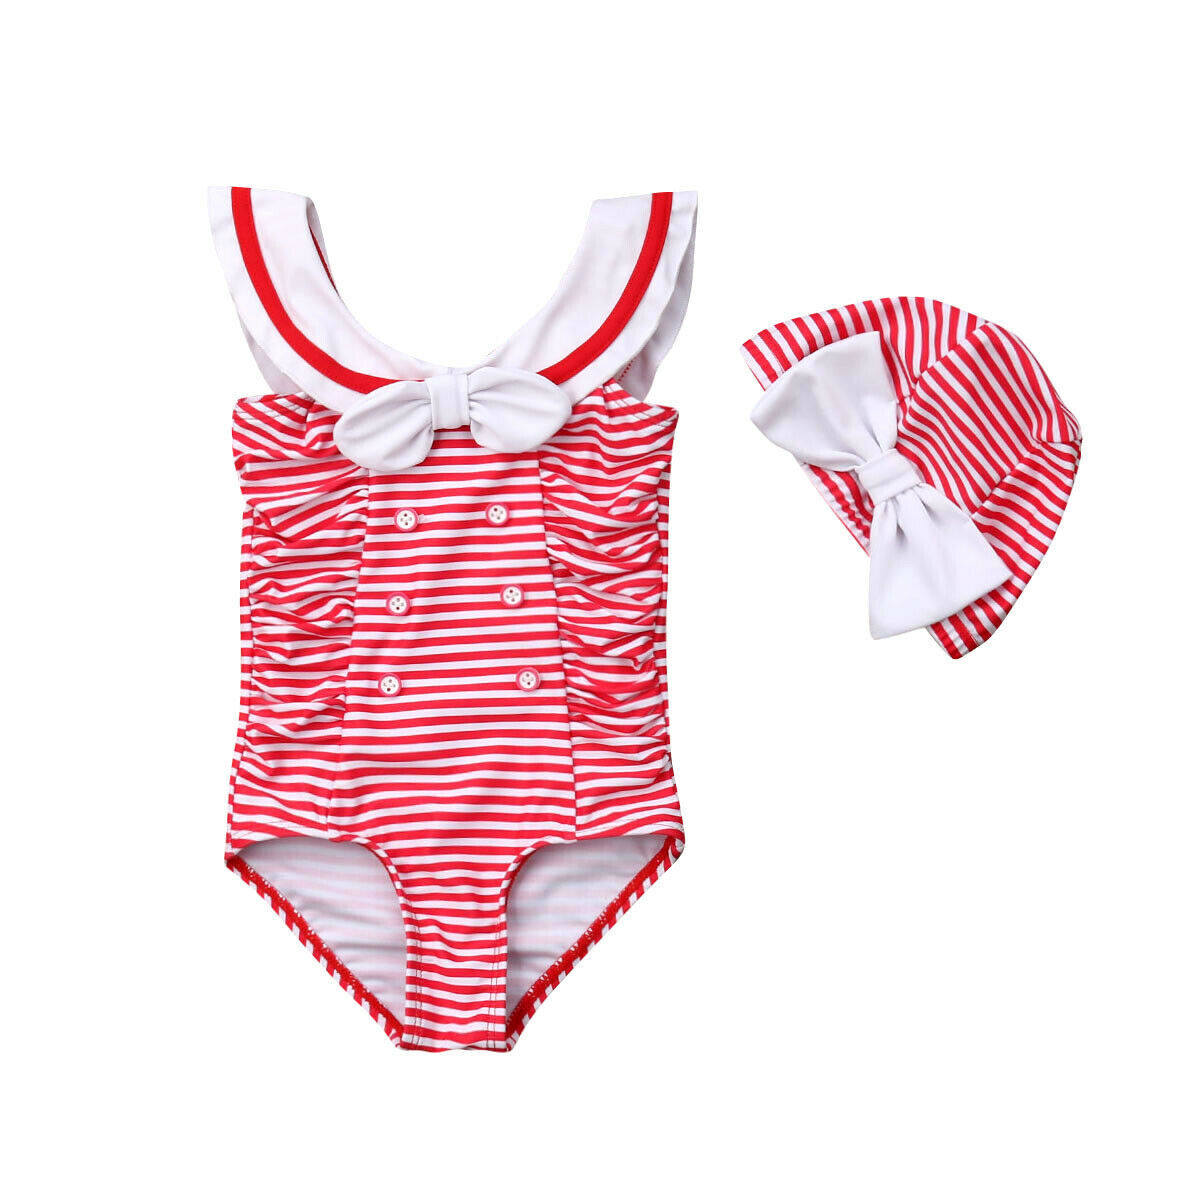 0-24M Cute Newborn Baby Girl Swimsuit Striped Bowtie Swimming Romper Hat Beachwear Bathing Suit | healthy feet socks